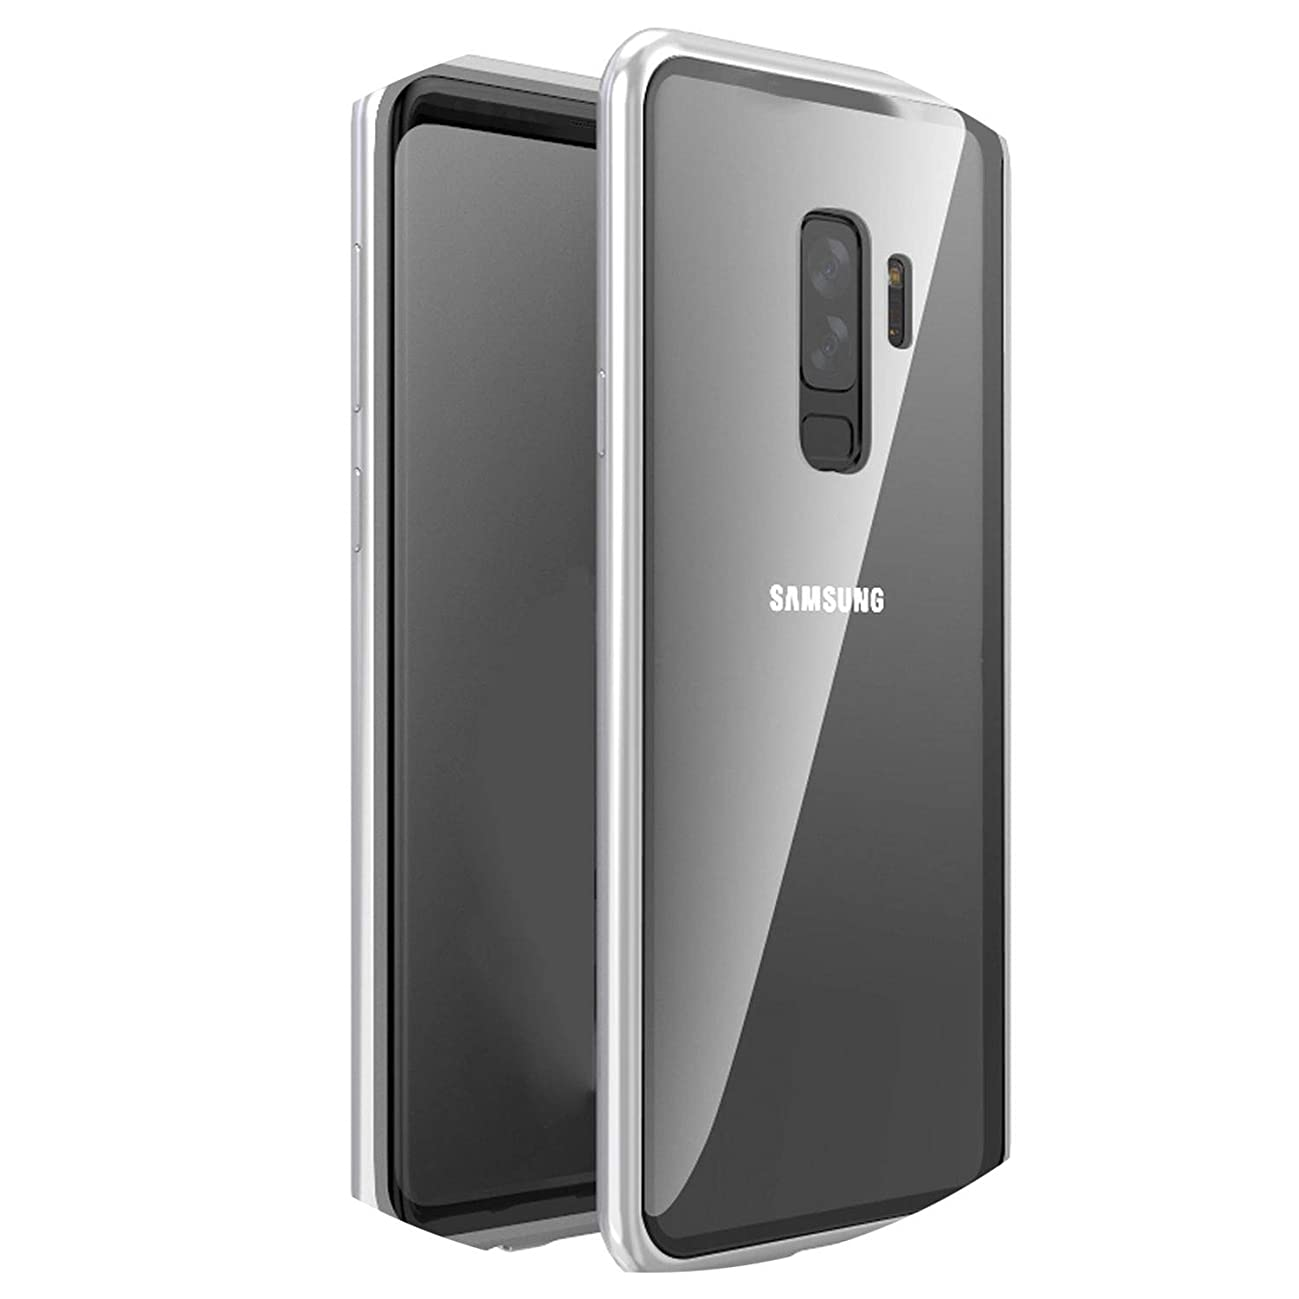 Adsorption Phone Case for Samsung Galaxy S9 S8 Plus Note 9 8 Metal Magnet Screen Protector Tempered Glass Flip Cover,Silver,for Galaxy S8 Plus,No Front Glass